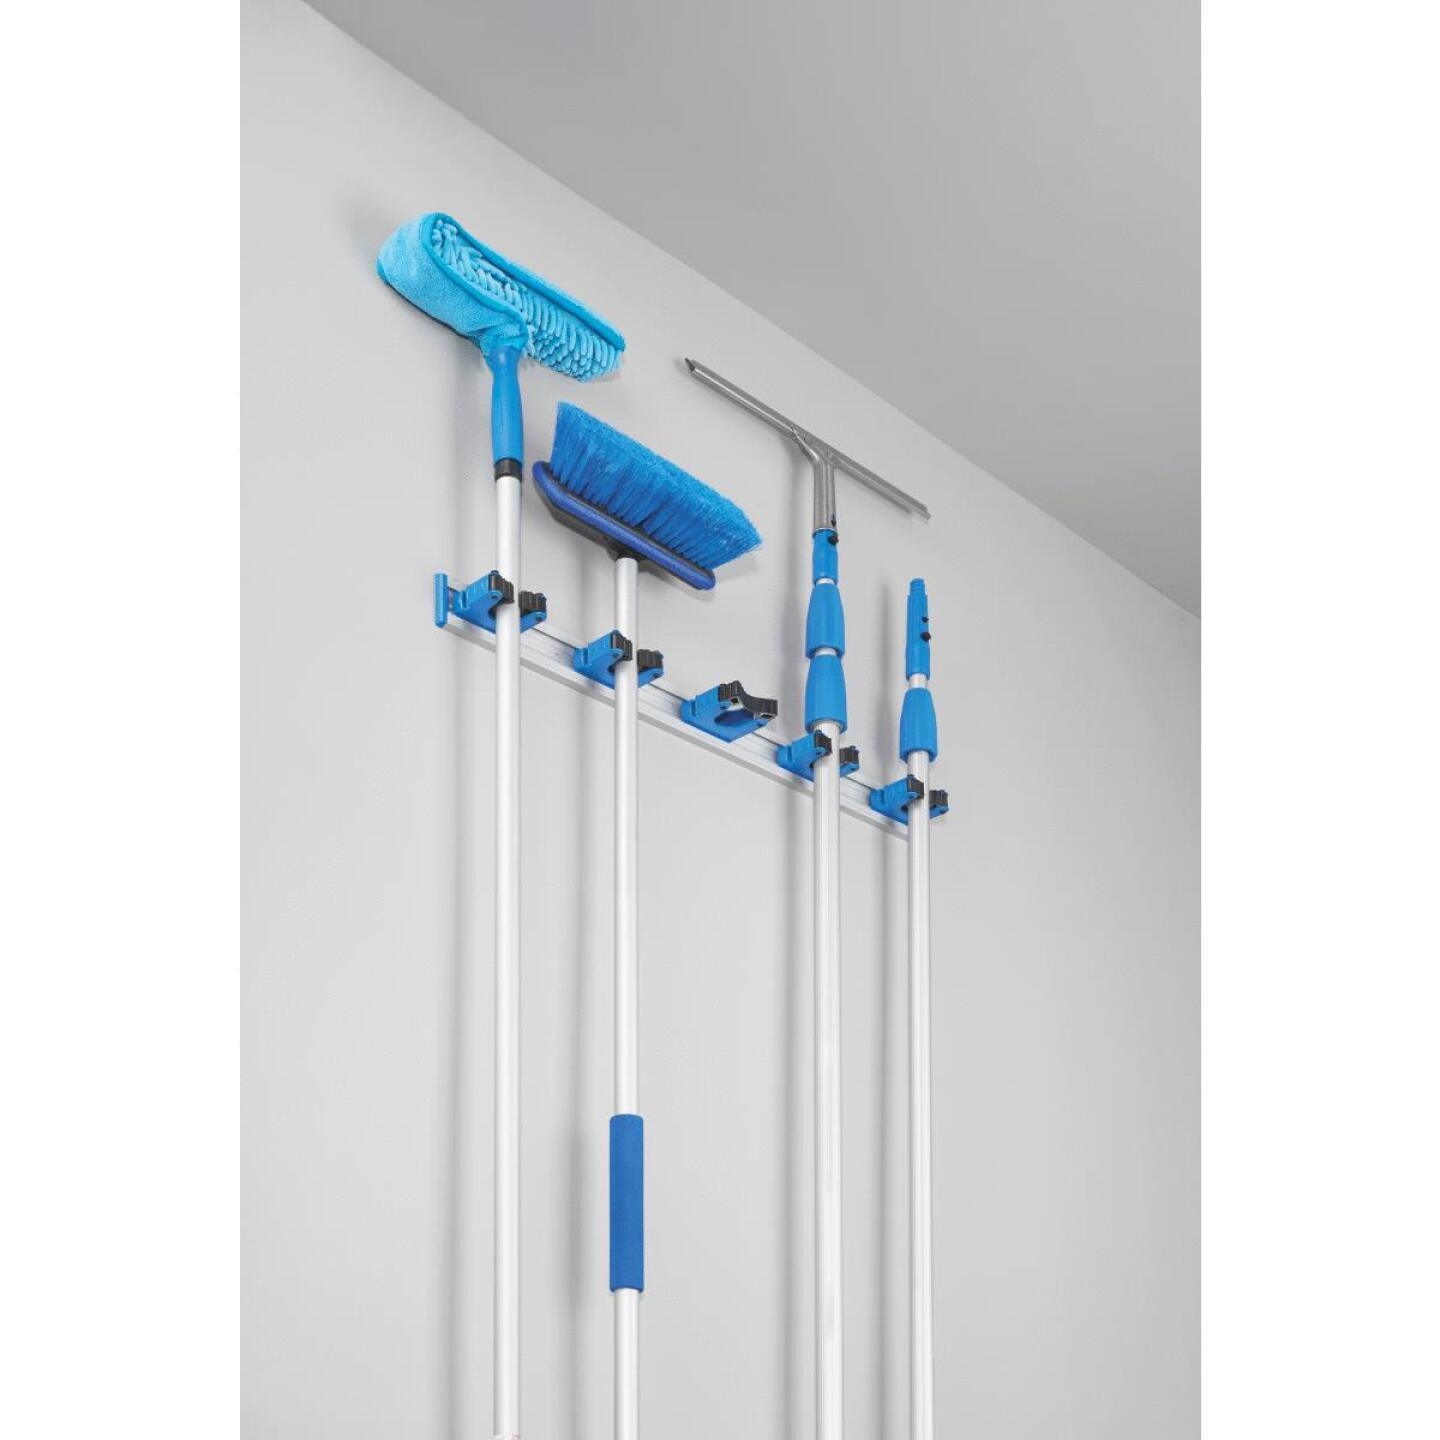 Unger 28 In. Pro Hand Held & Long Handle Tool Rack Image 5